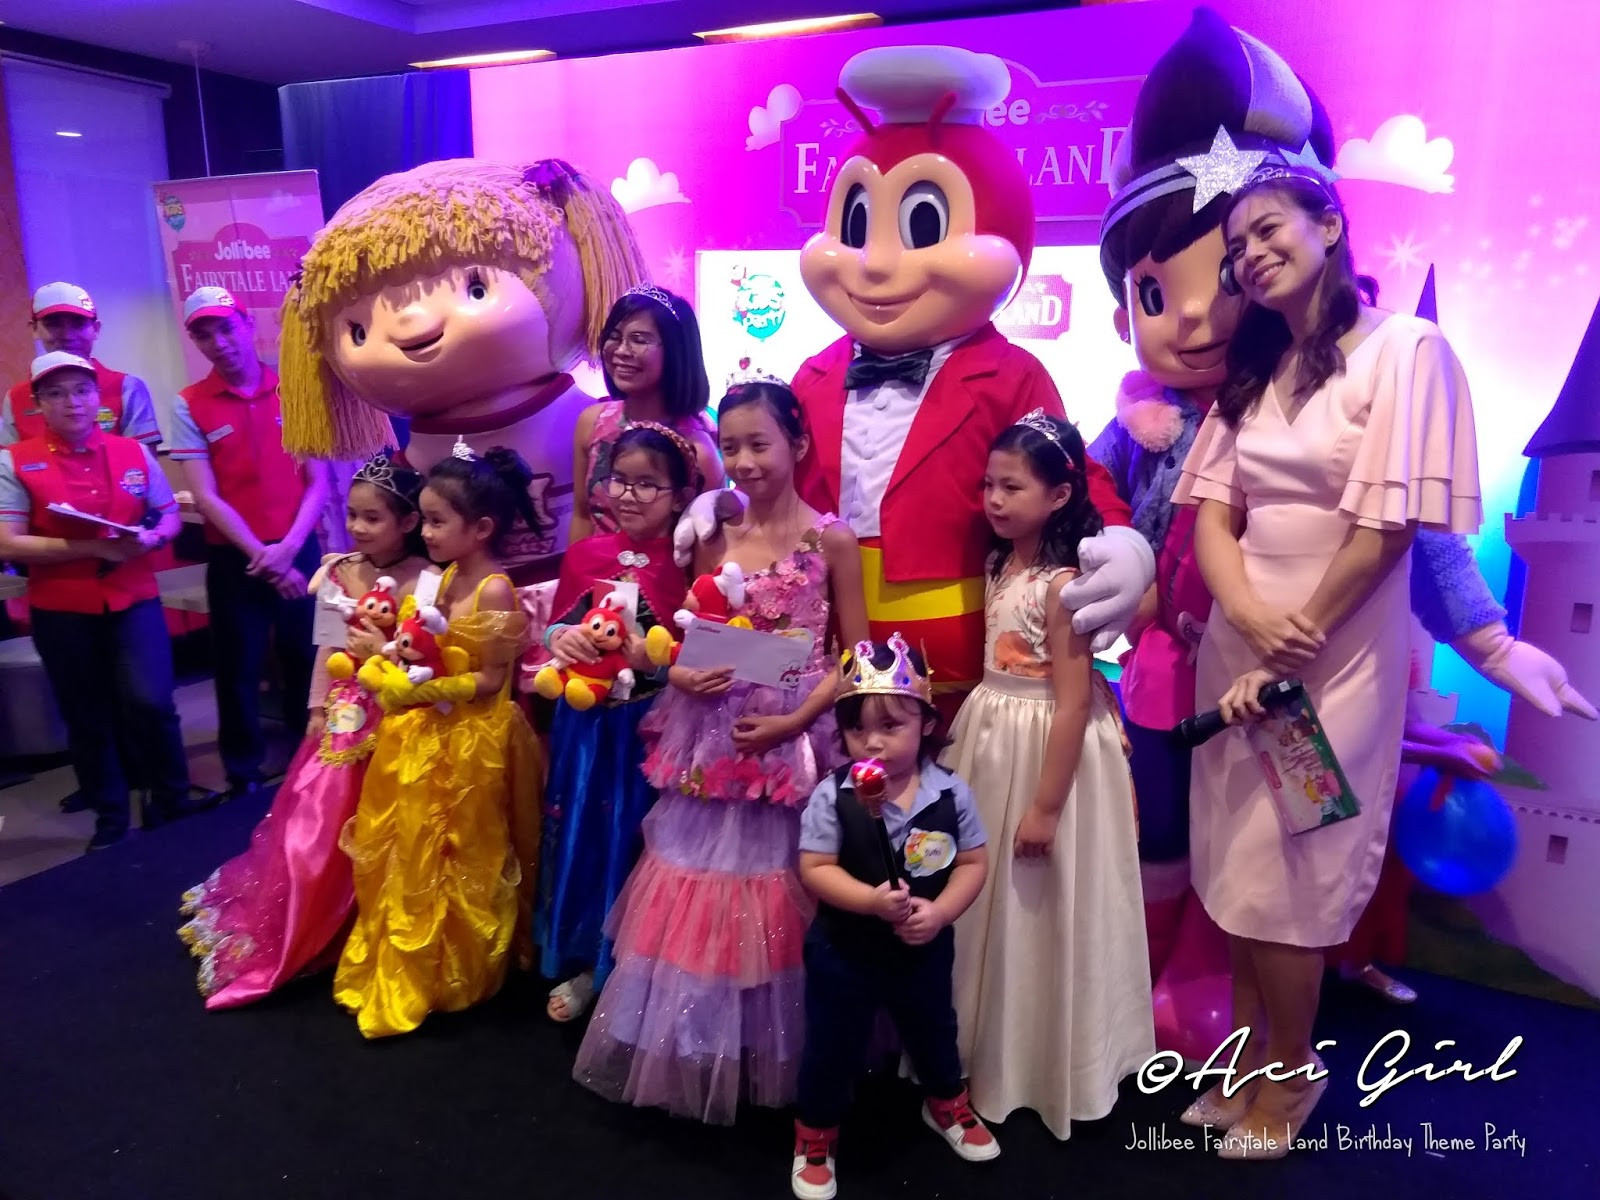 Jollibee Kids Party  The Most Magical Jollibee Kids Party Theme is Finally Here